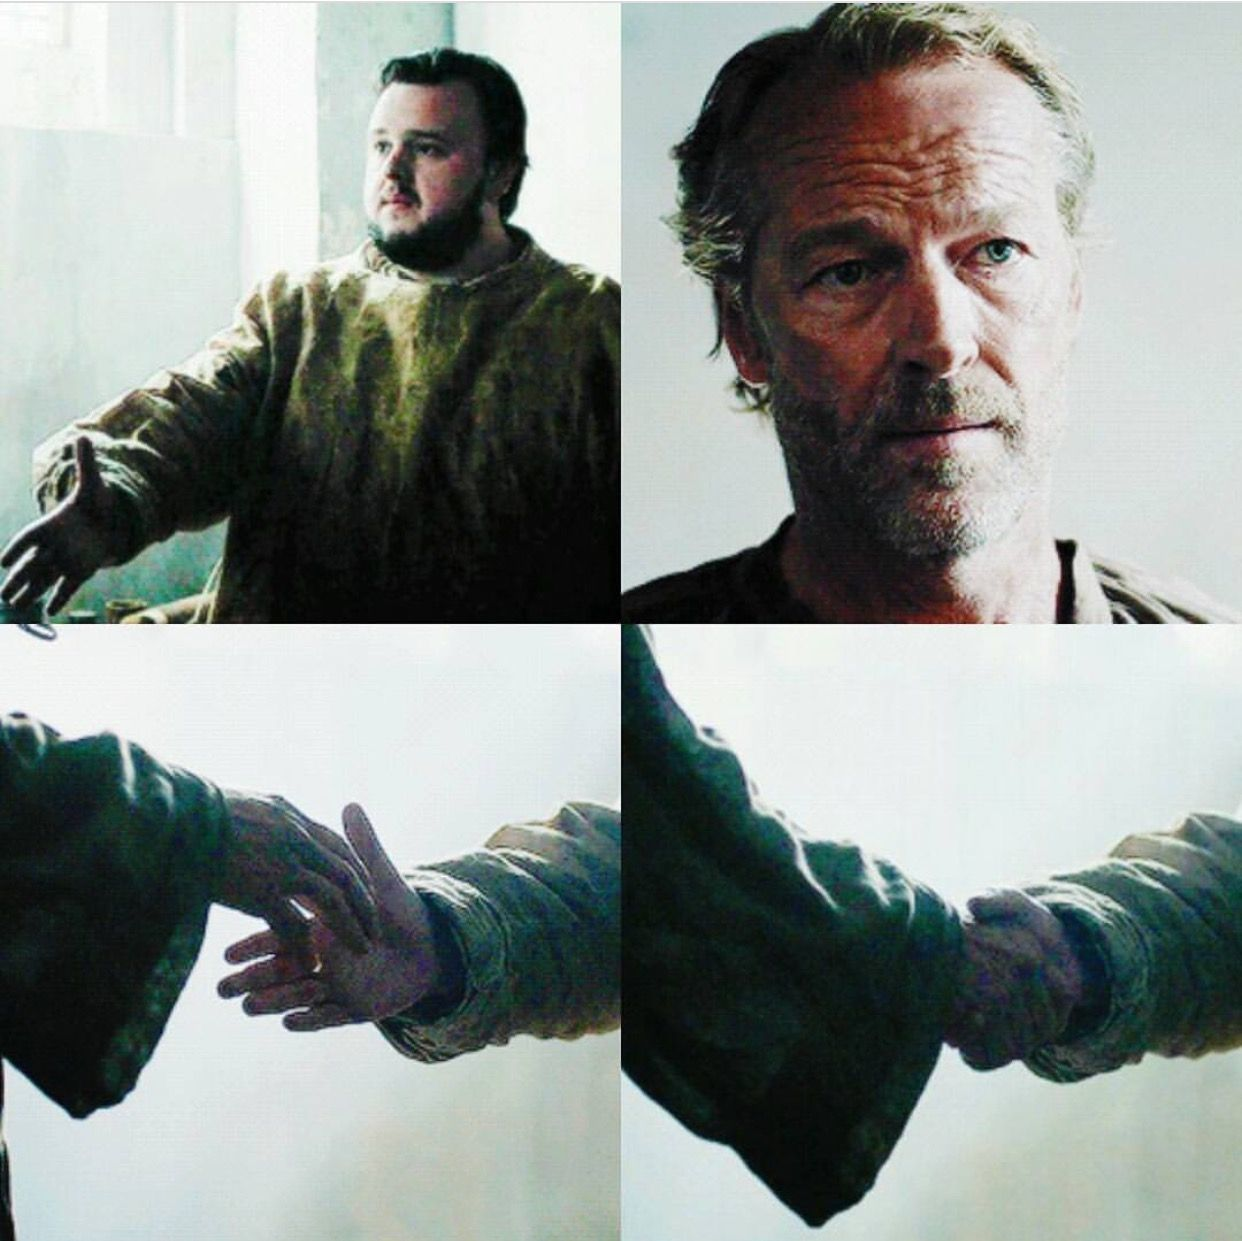 25 best ideas about jorah game of thrones on pinterest game of - Ser Jorah Mormont And Samuel Tarly Game Of Thrones Season 7